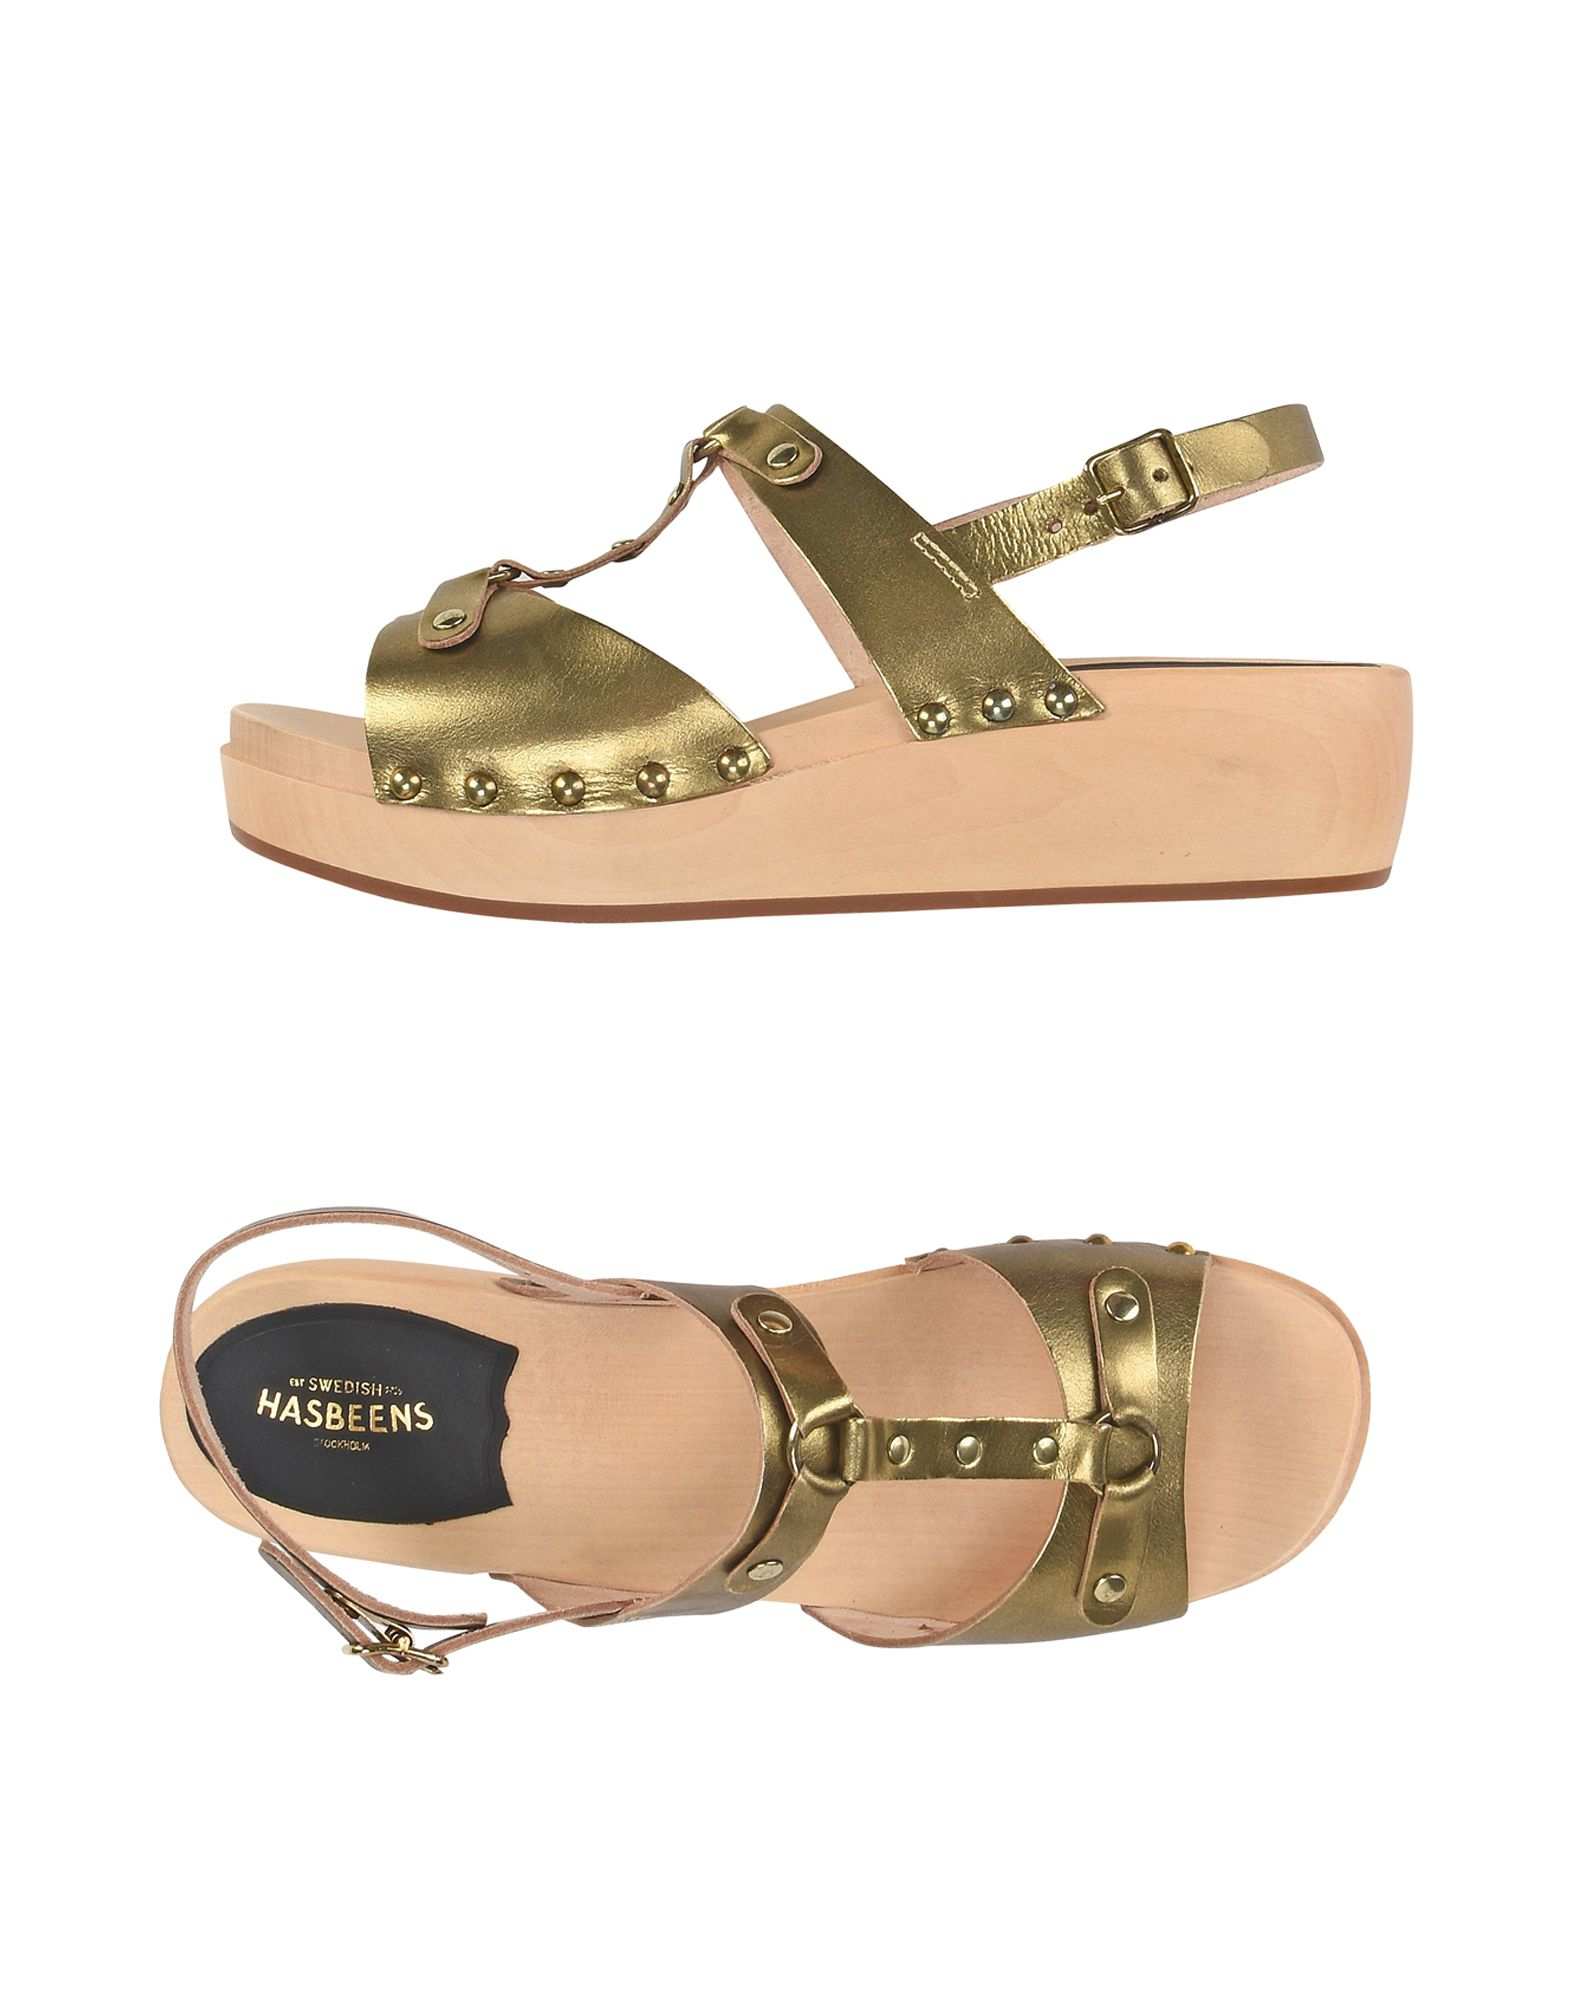 SWEDISH HASBEENS Sandals in Gold